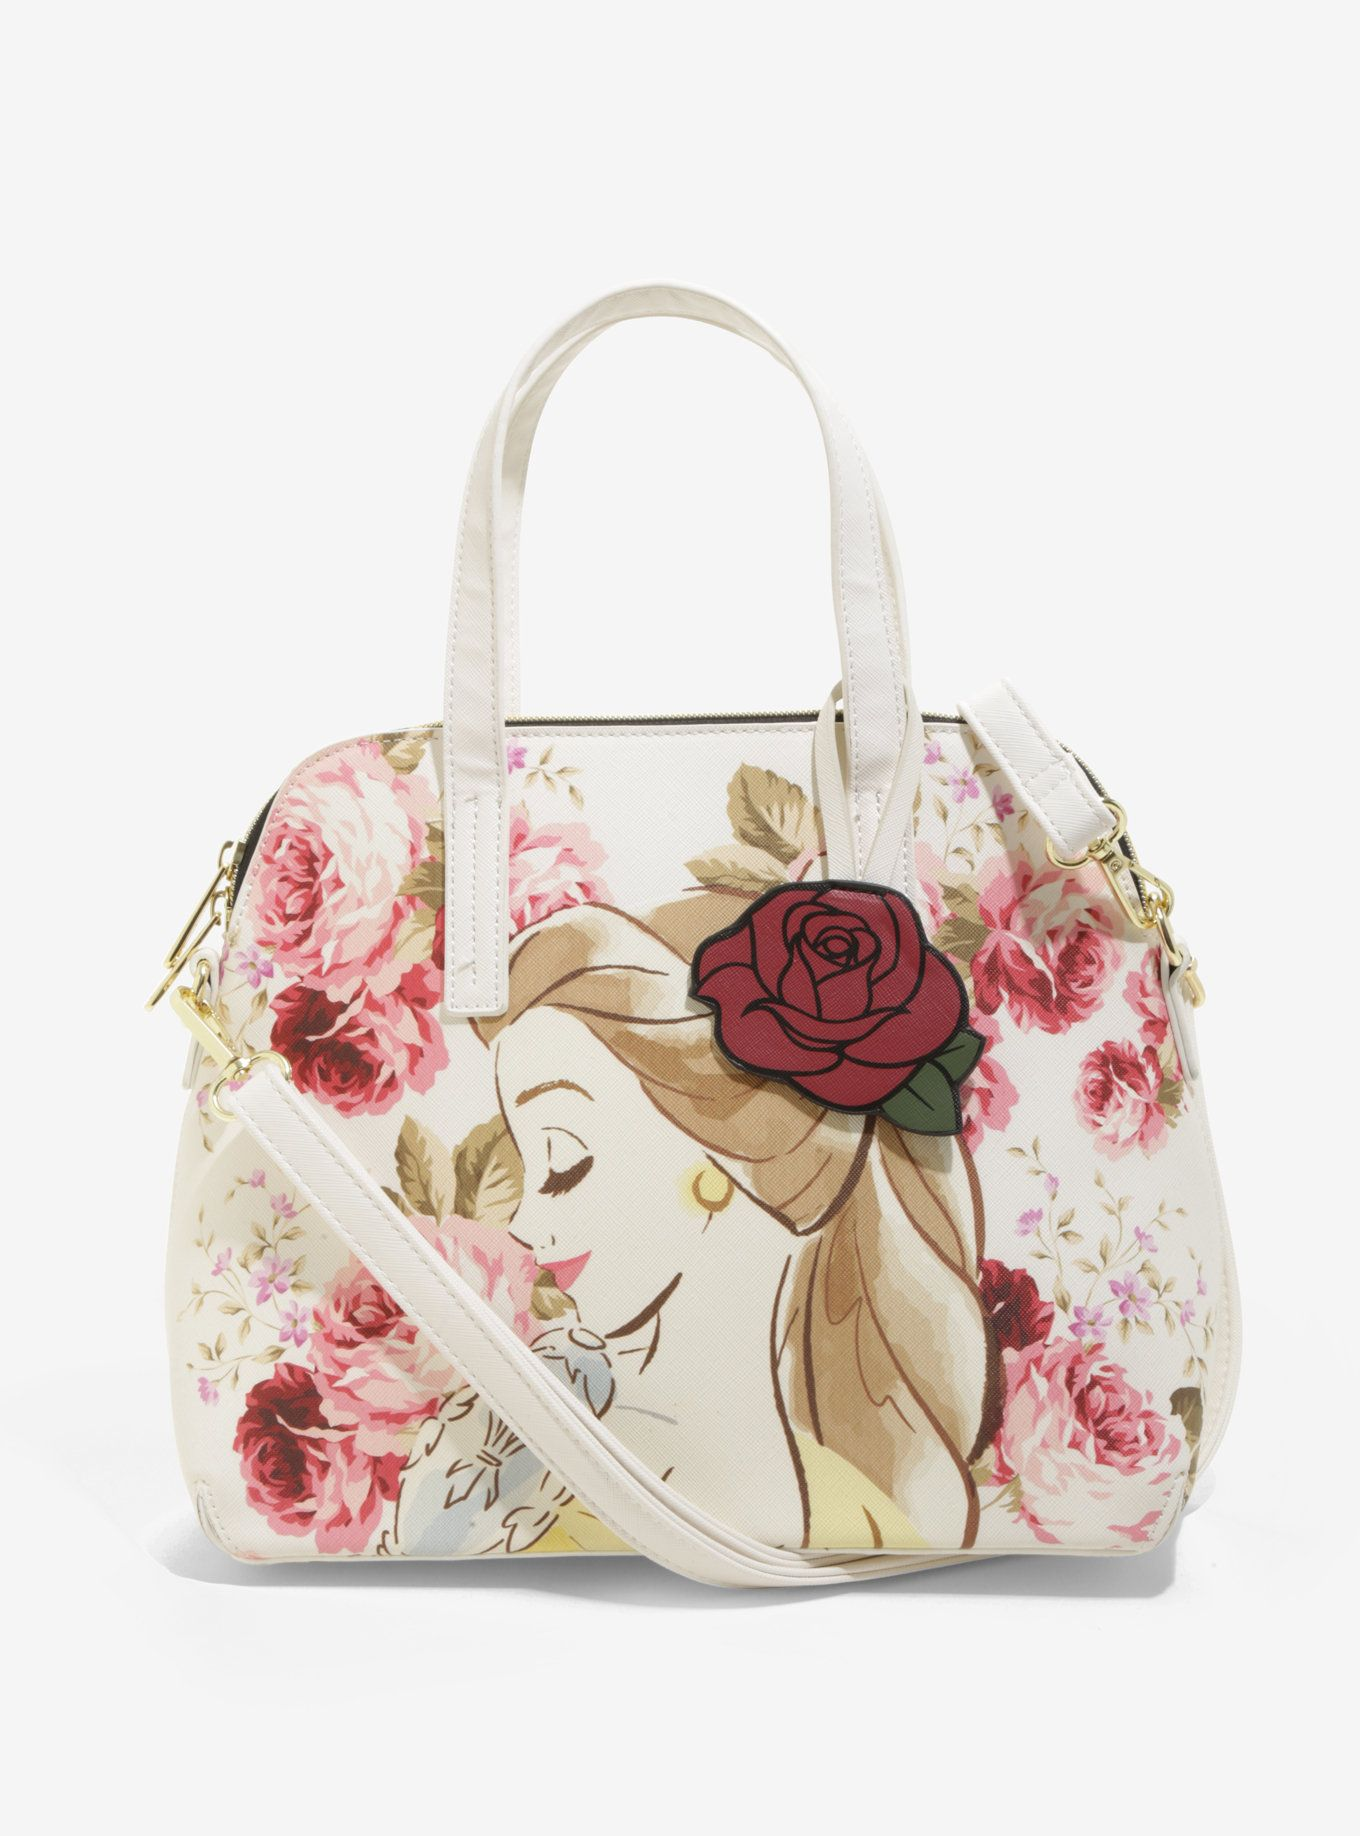 Beauty and the beast loungefly belle bag  36aa9df16a739